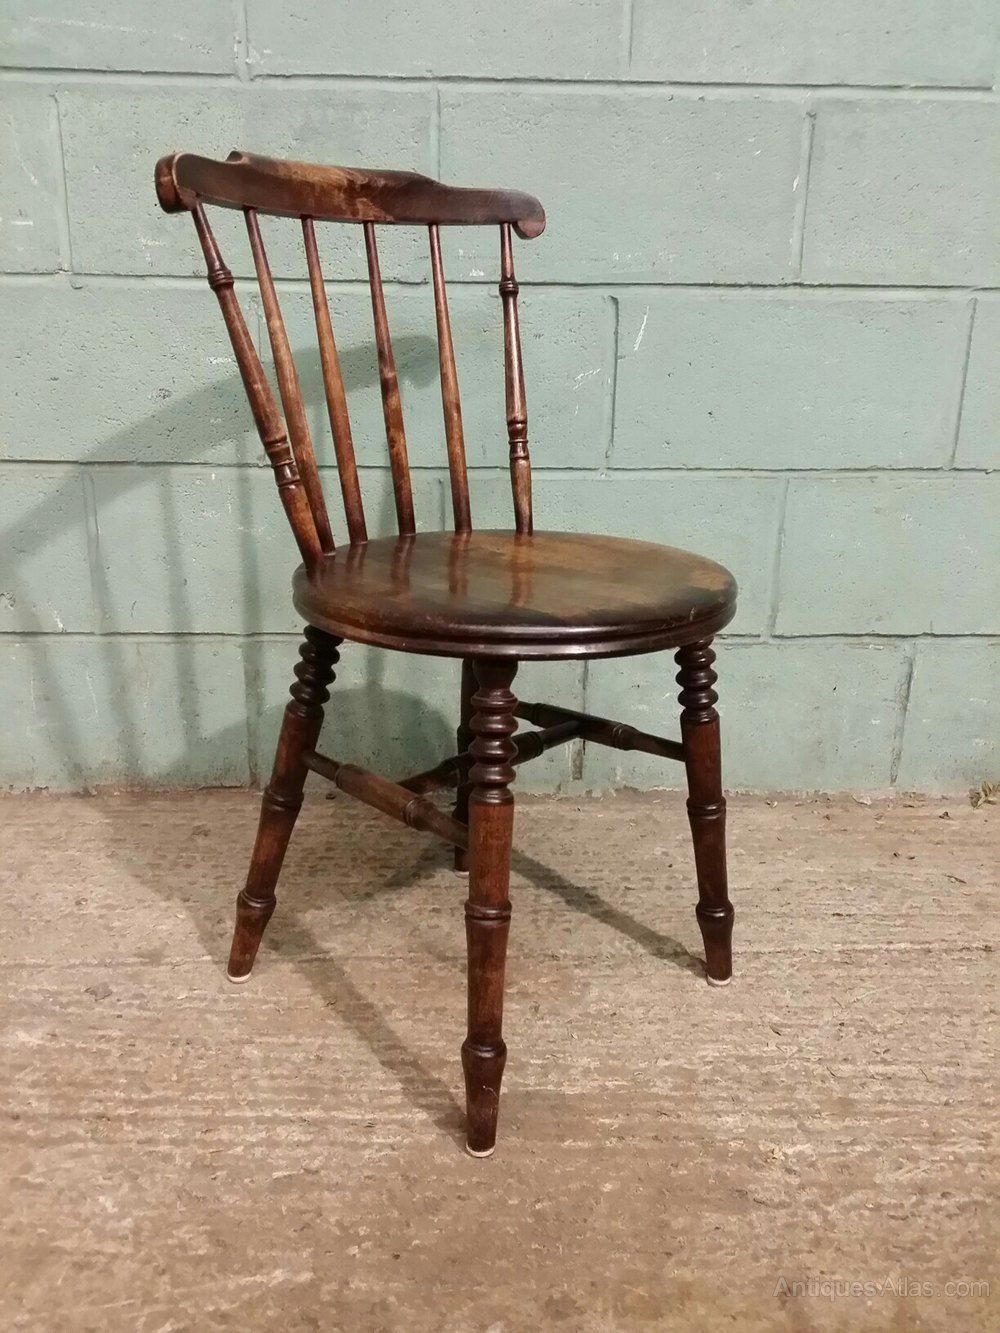 Image result for kitchen victorian CHAIR - Image Result For Kitchen Victorian CHAIR CINDERELLA PROPS